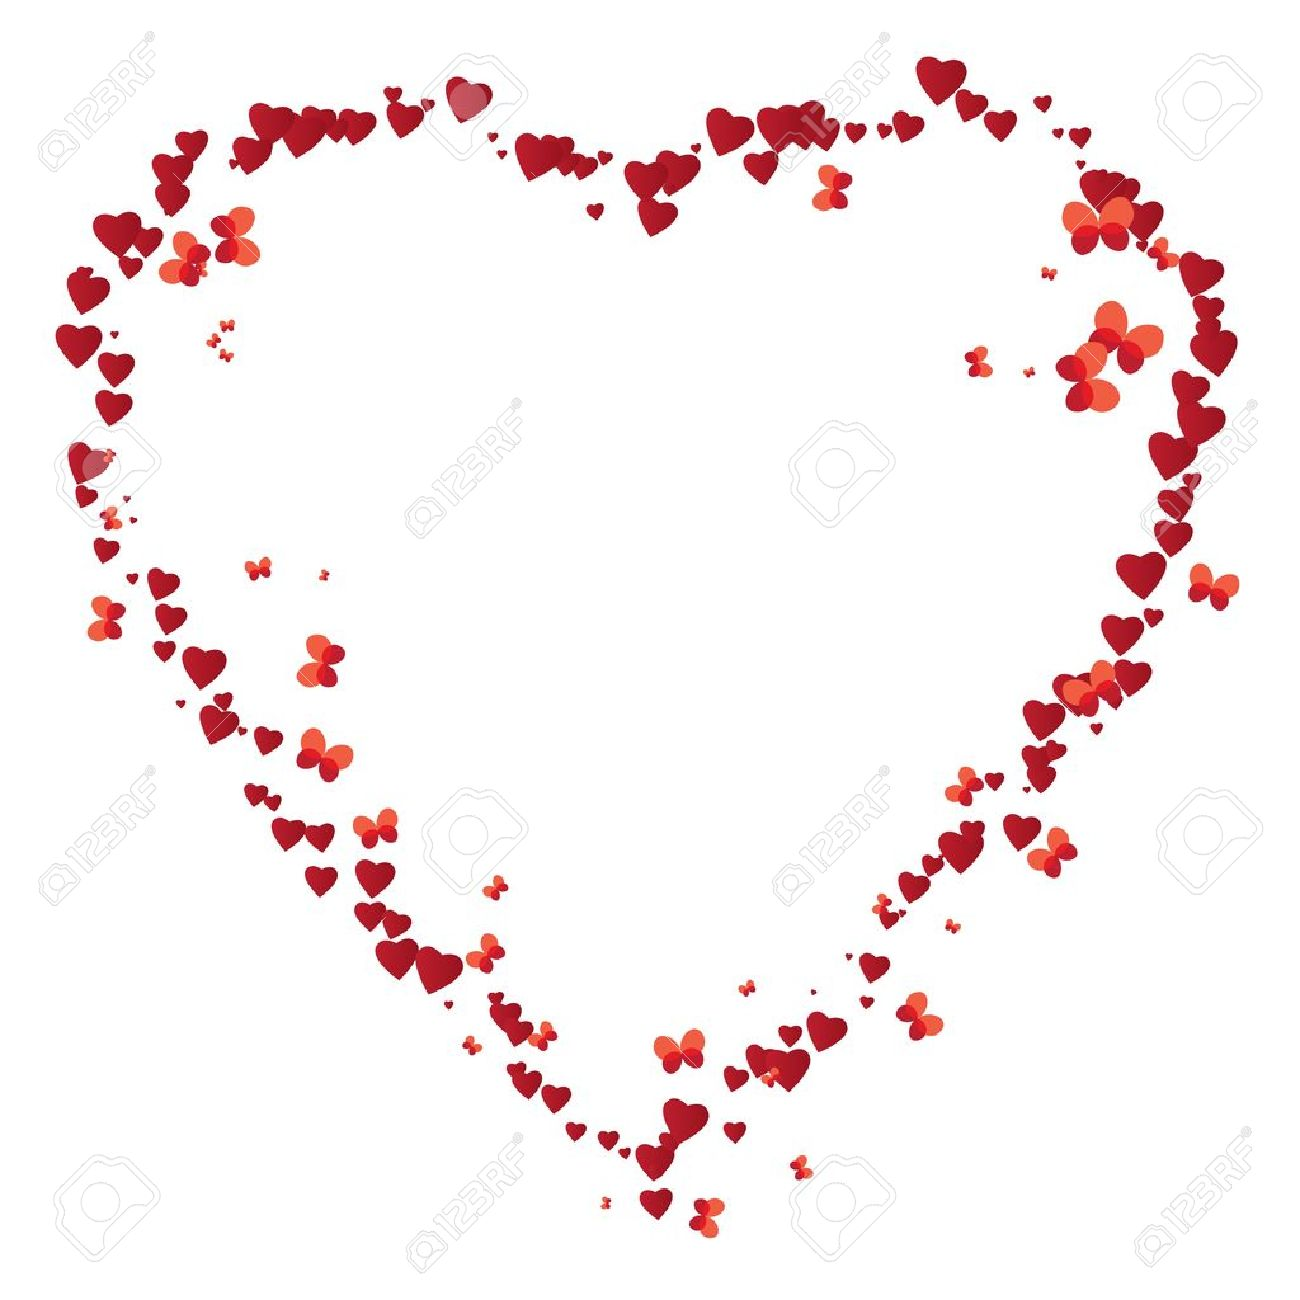 Vector Valentine Frame Like Heart With Butterflies Royalty Free ...